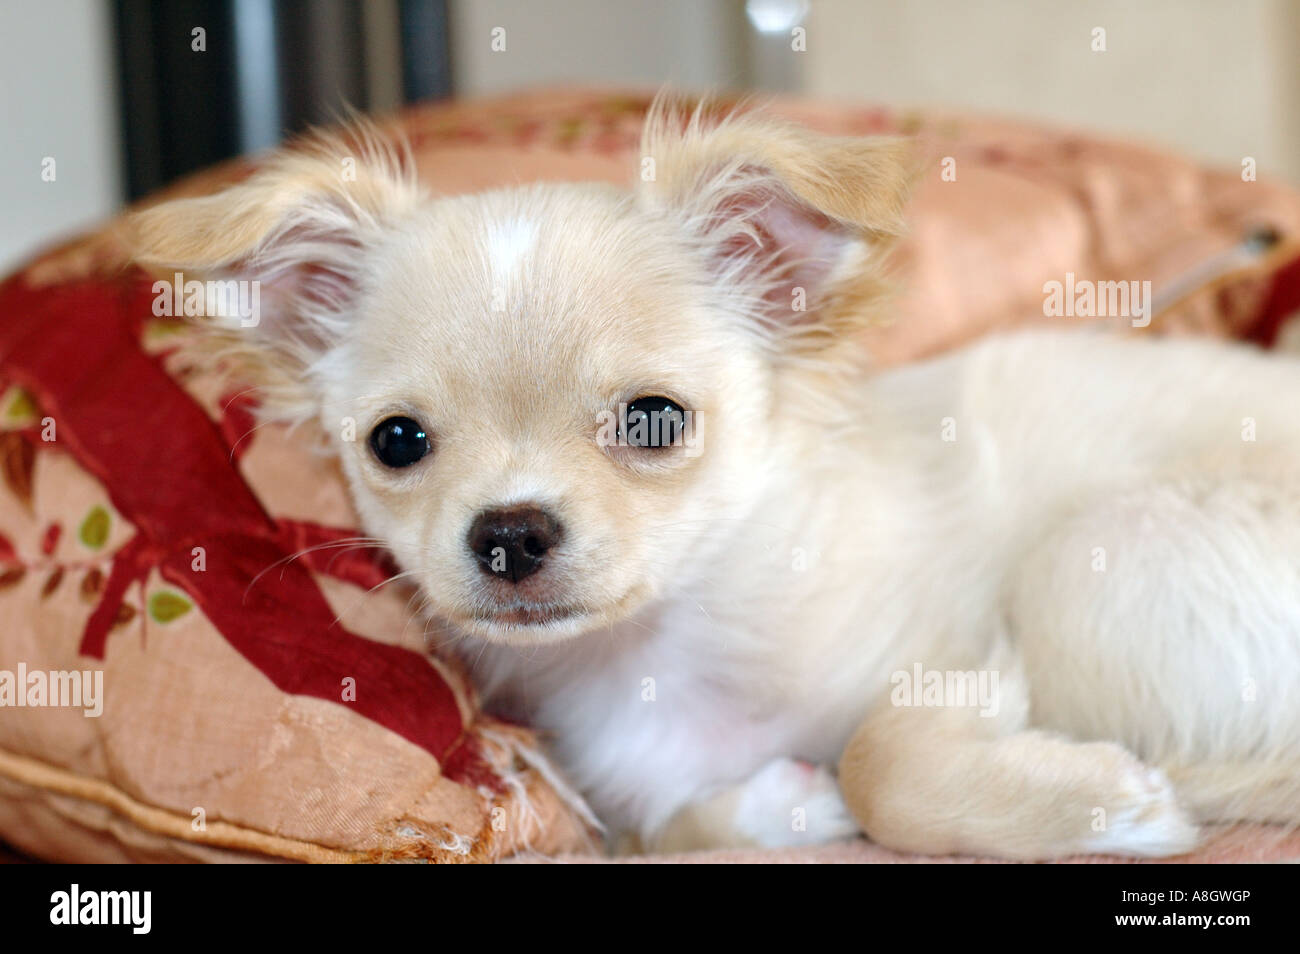 Cute And Fluffy Chihuahua Puppy Resting On A Cushion Stock